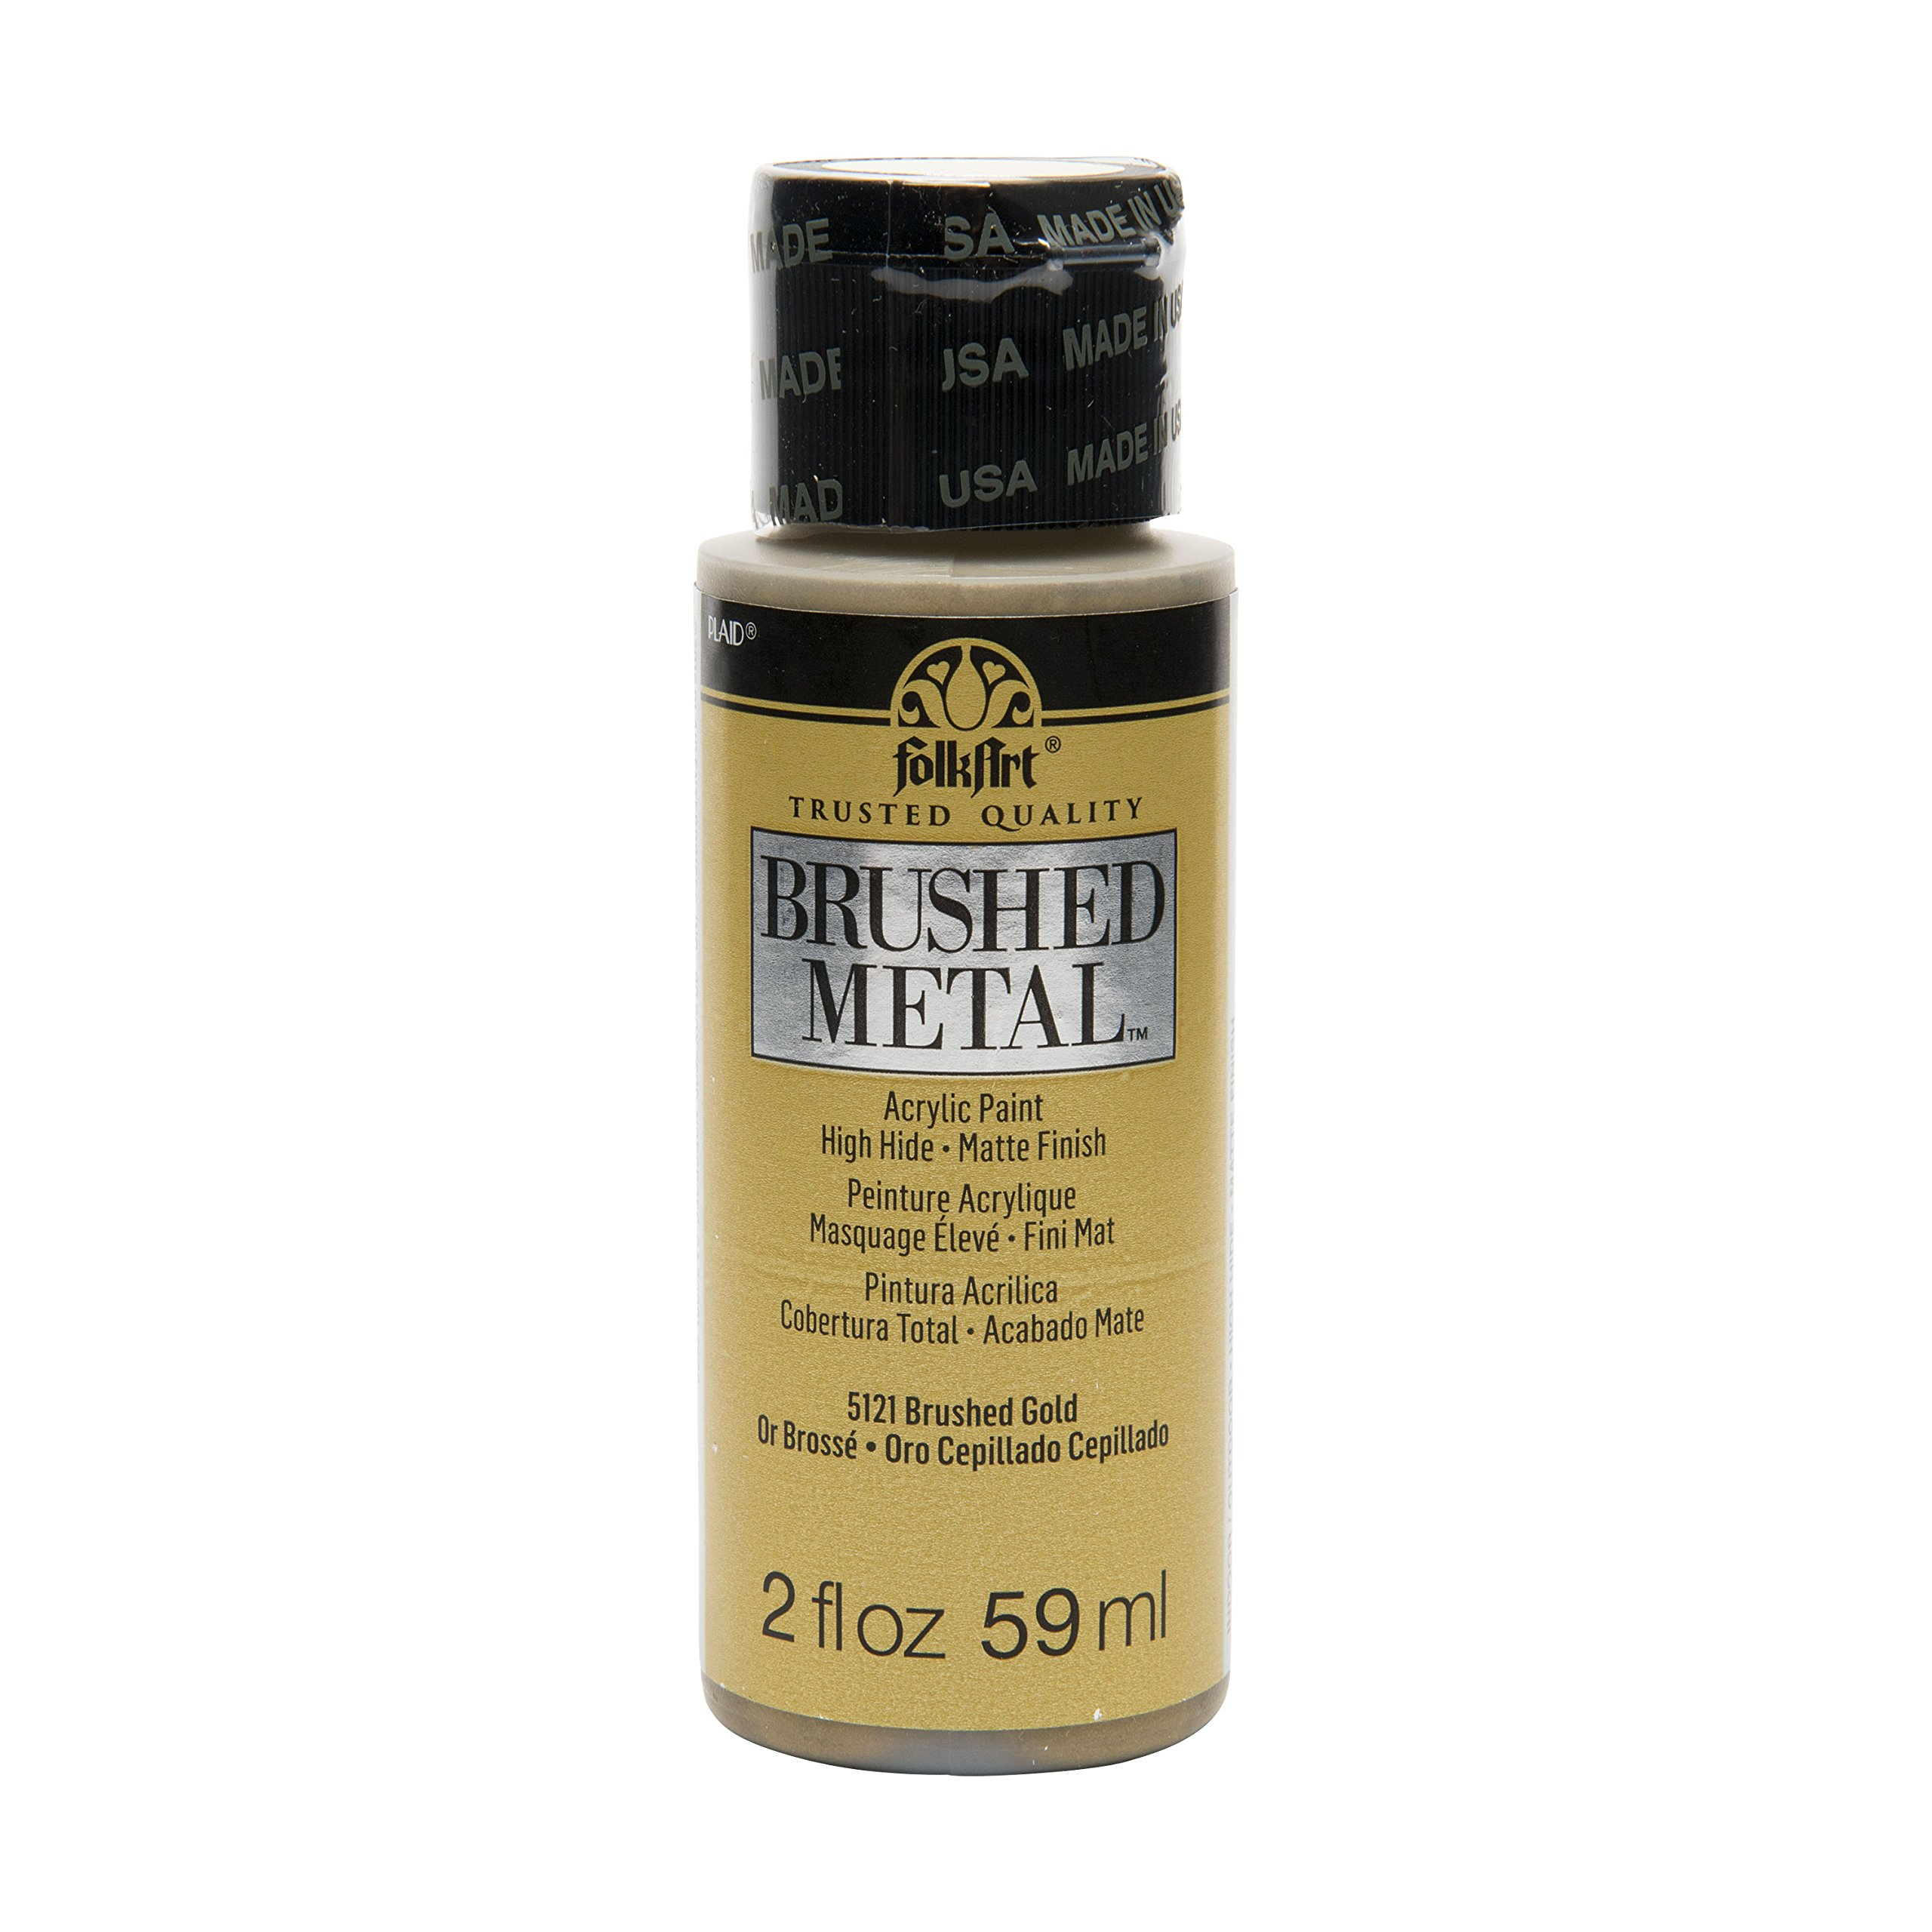 FolkArt Brushed Metal Paint in Assorted Colors (2 oz), Gold